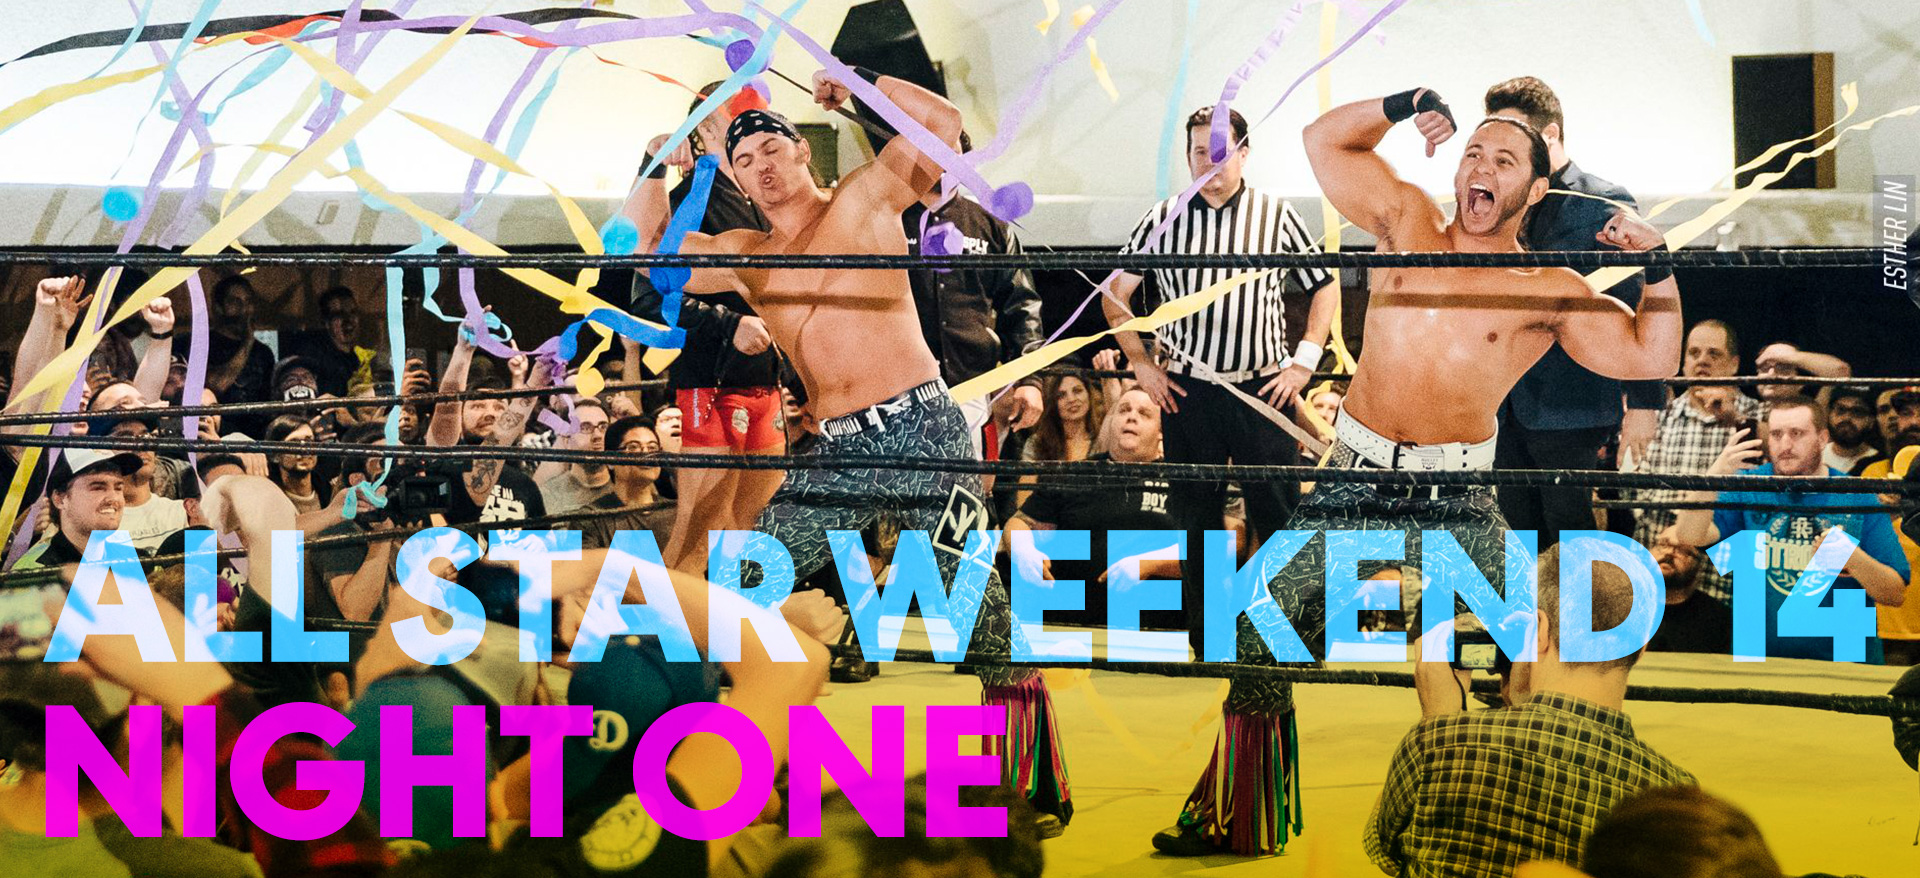 PWG: All Star Weekend 14 Night One